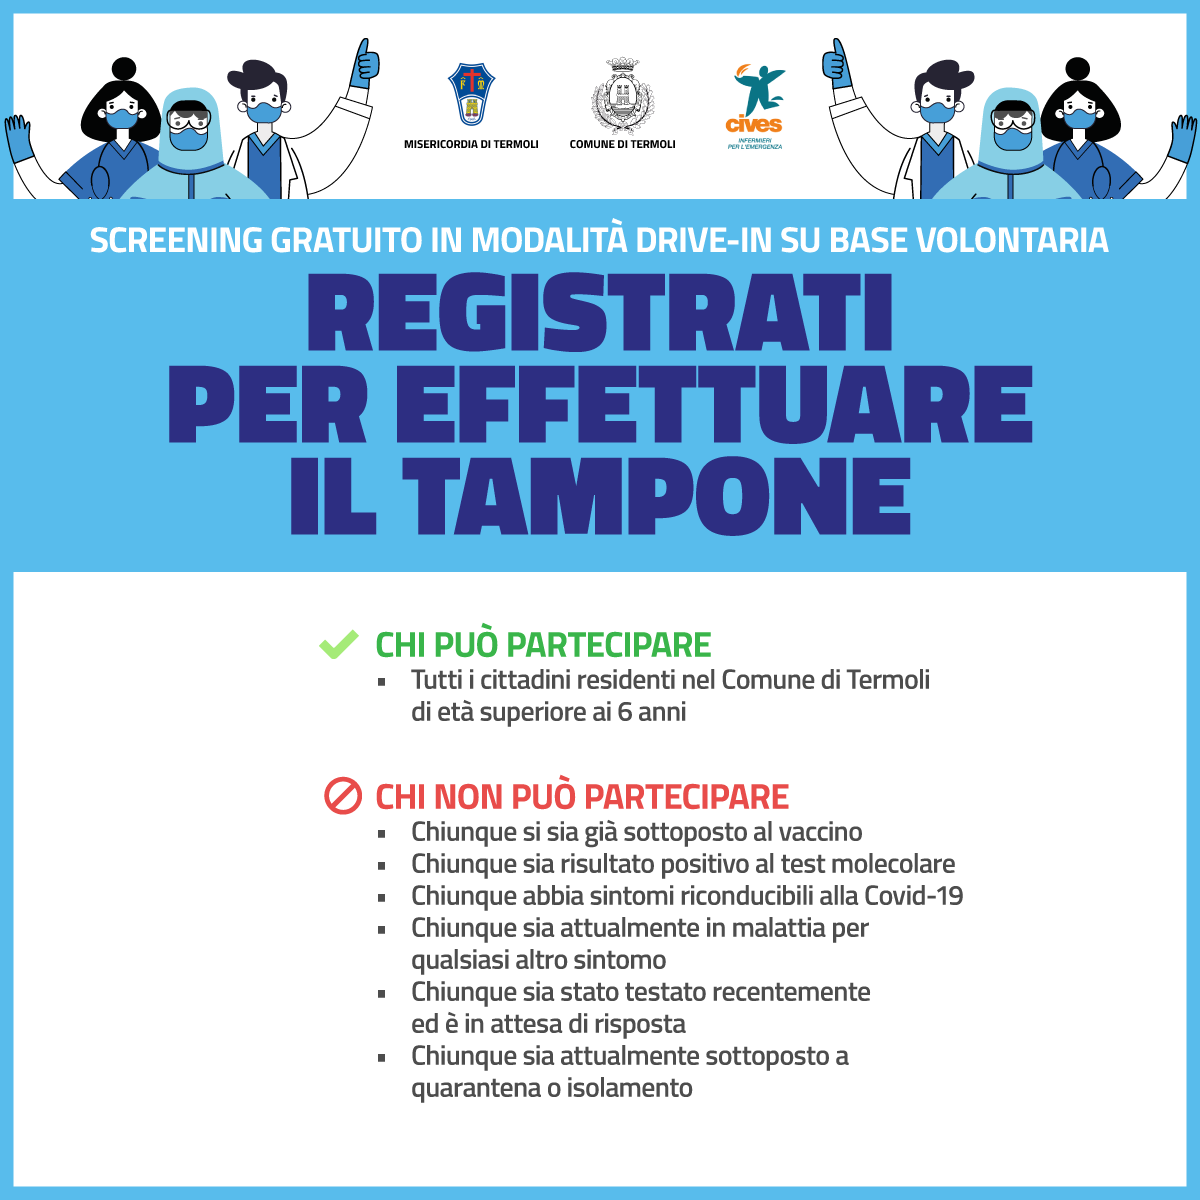 Screening epidemiologico su base volontaria